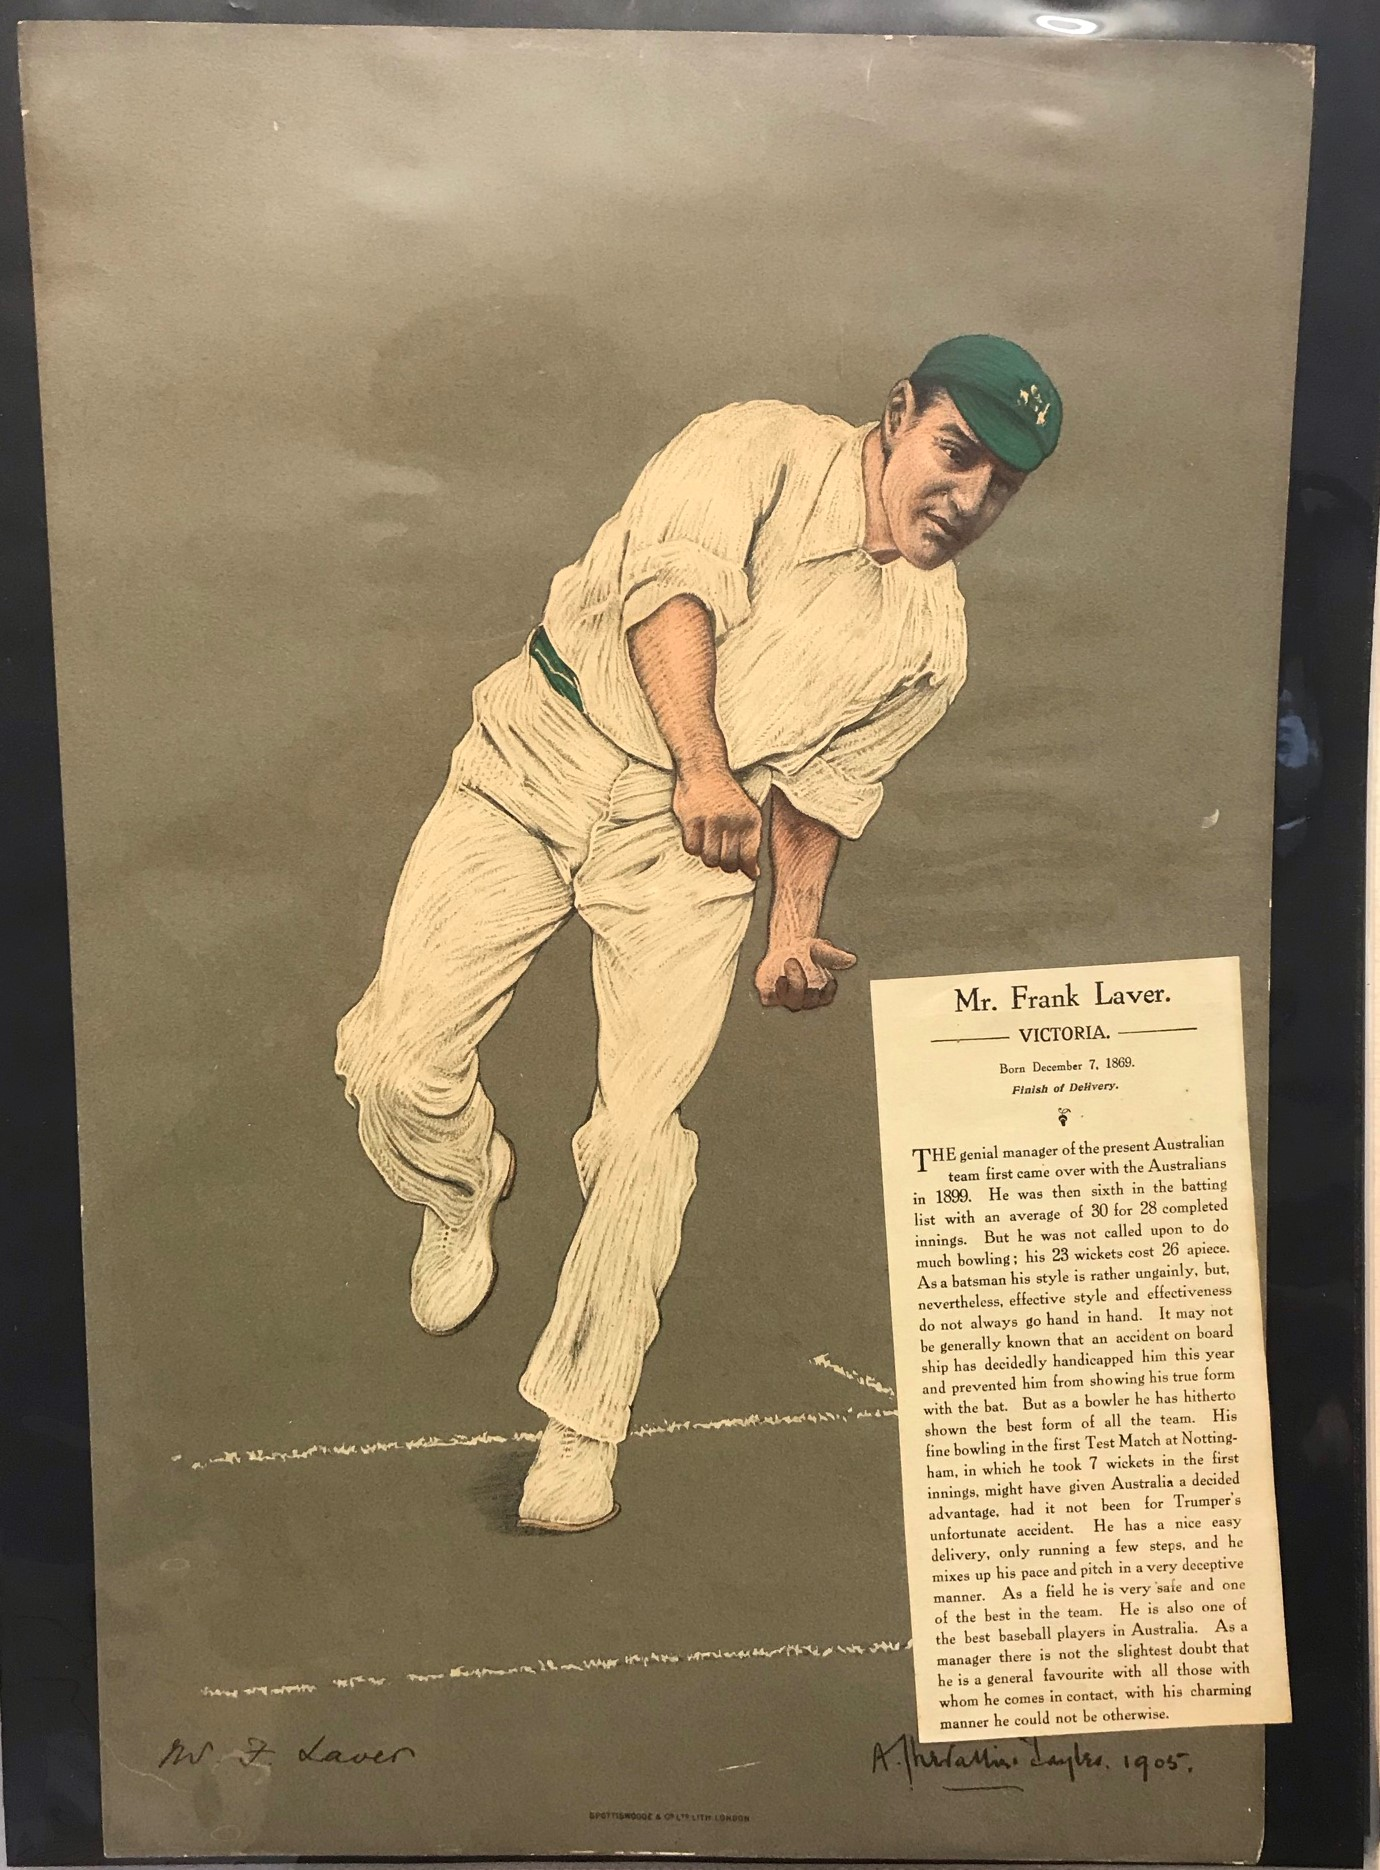 Australia (Victoria) 1905 colour print of Mr Frank Laver, First Test 1889 bowling, by Chevalier